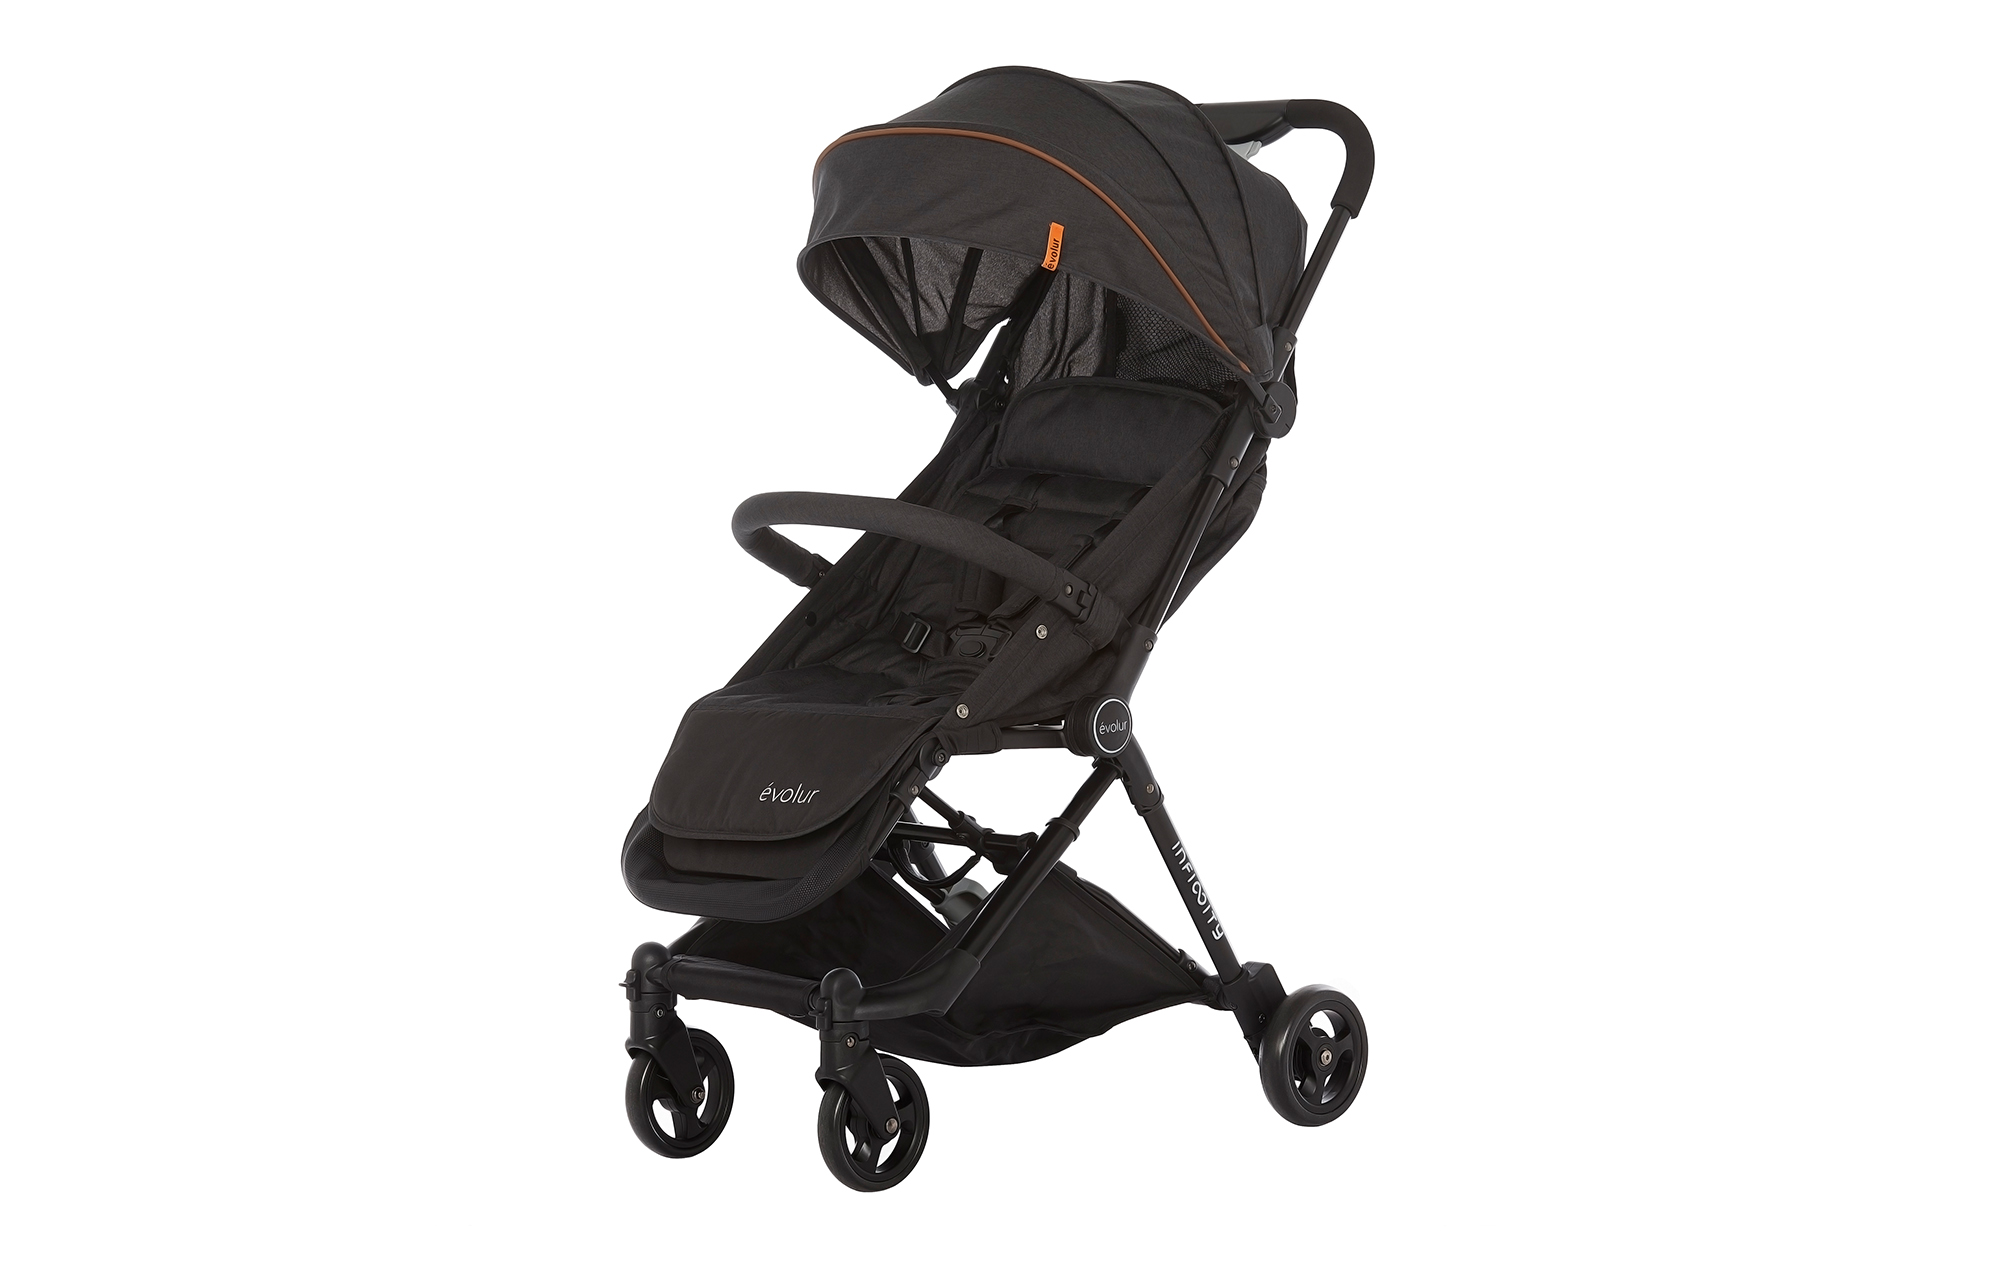 Evolur Infinity Convertible Stroller in Black